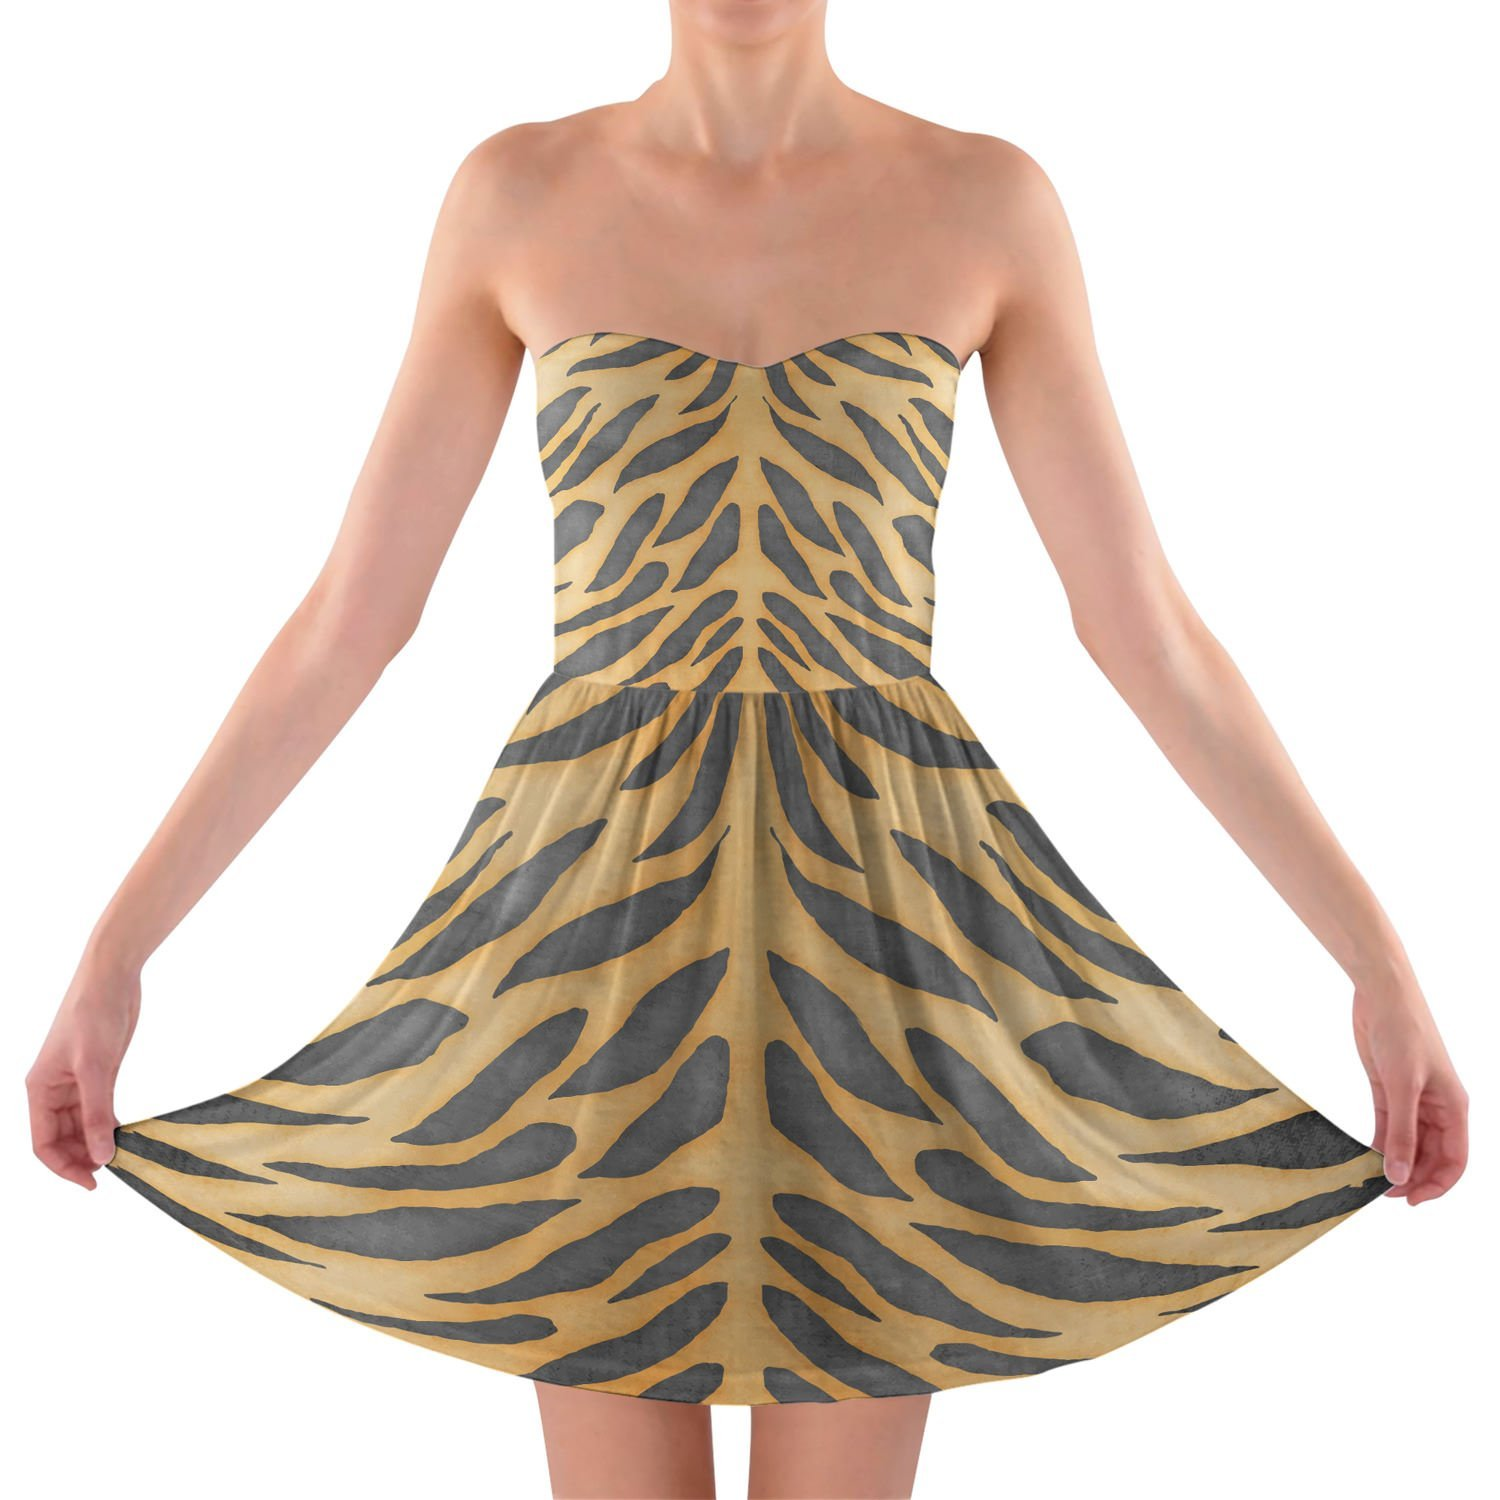 Tiger Print Strapless Bra Top Dress Trägerlos Sommerkleid XS-3XL